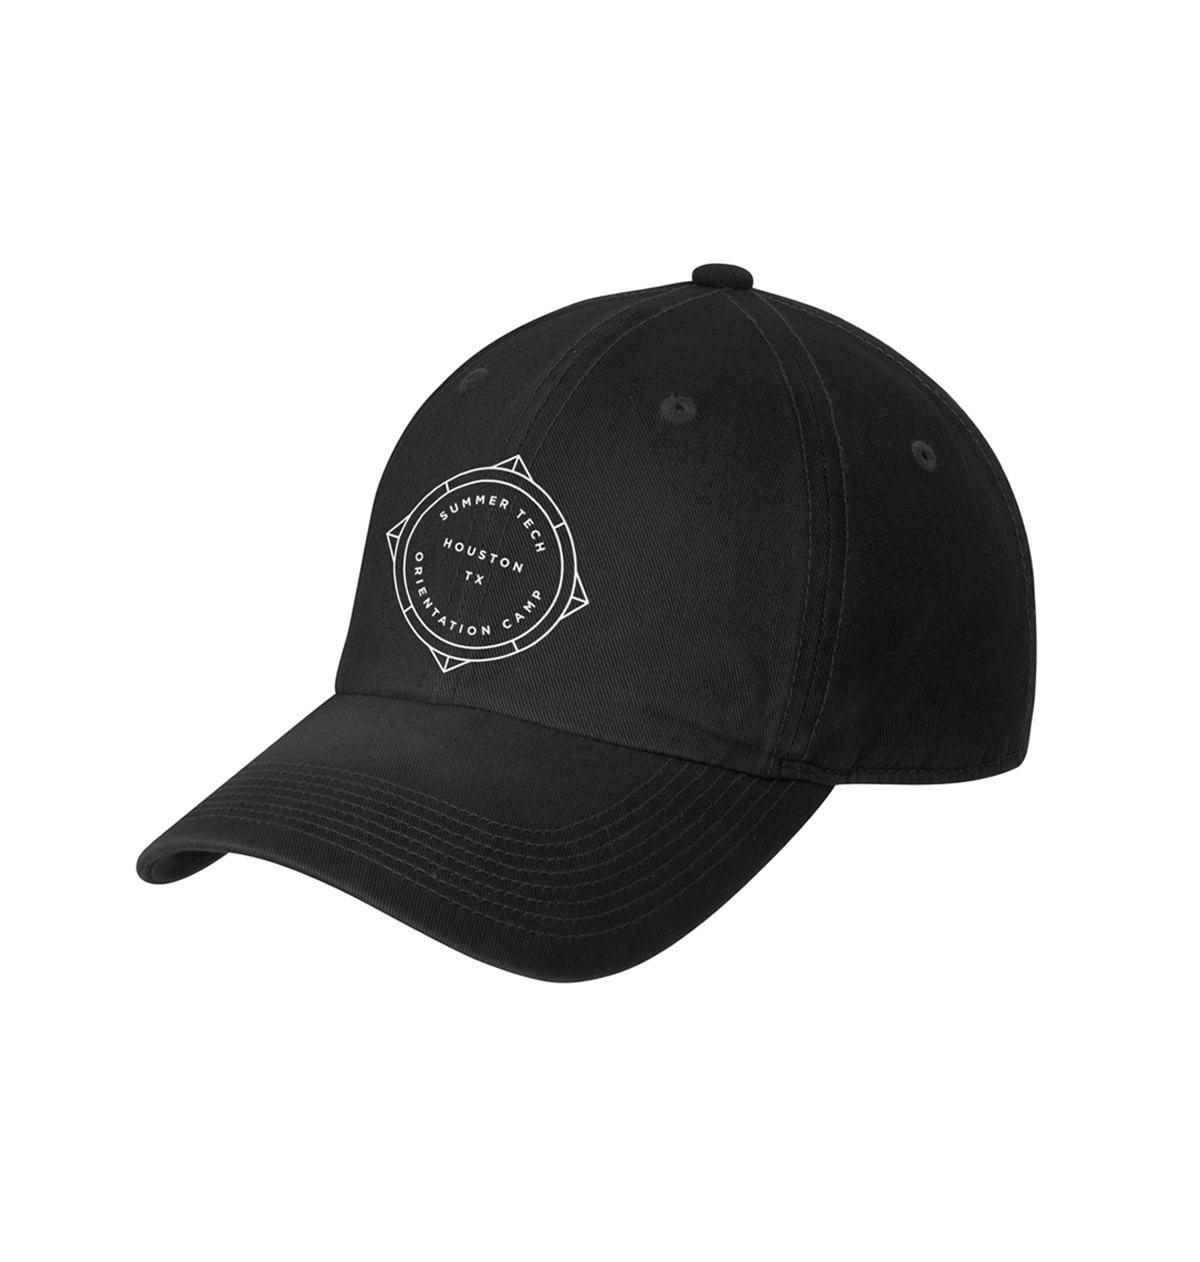 apdat-embroidery-port-authority-wash-cap